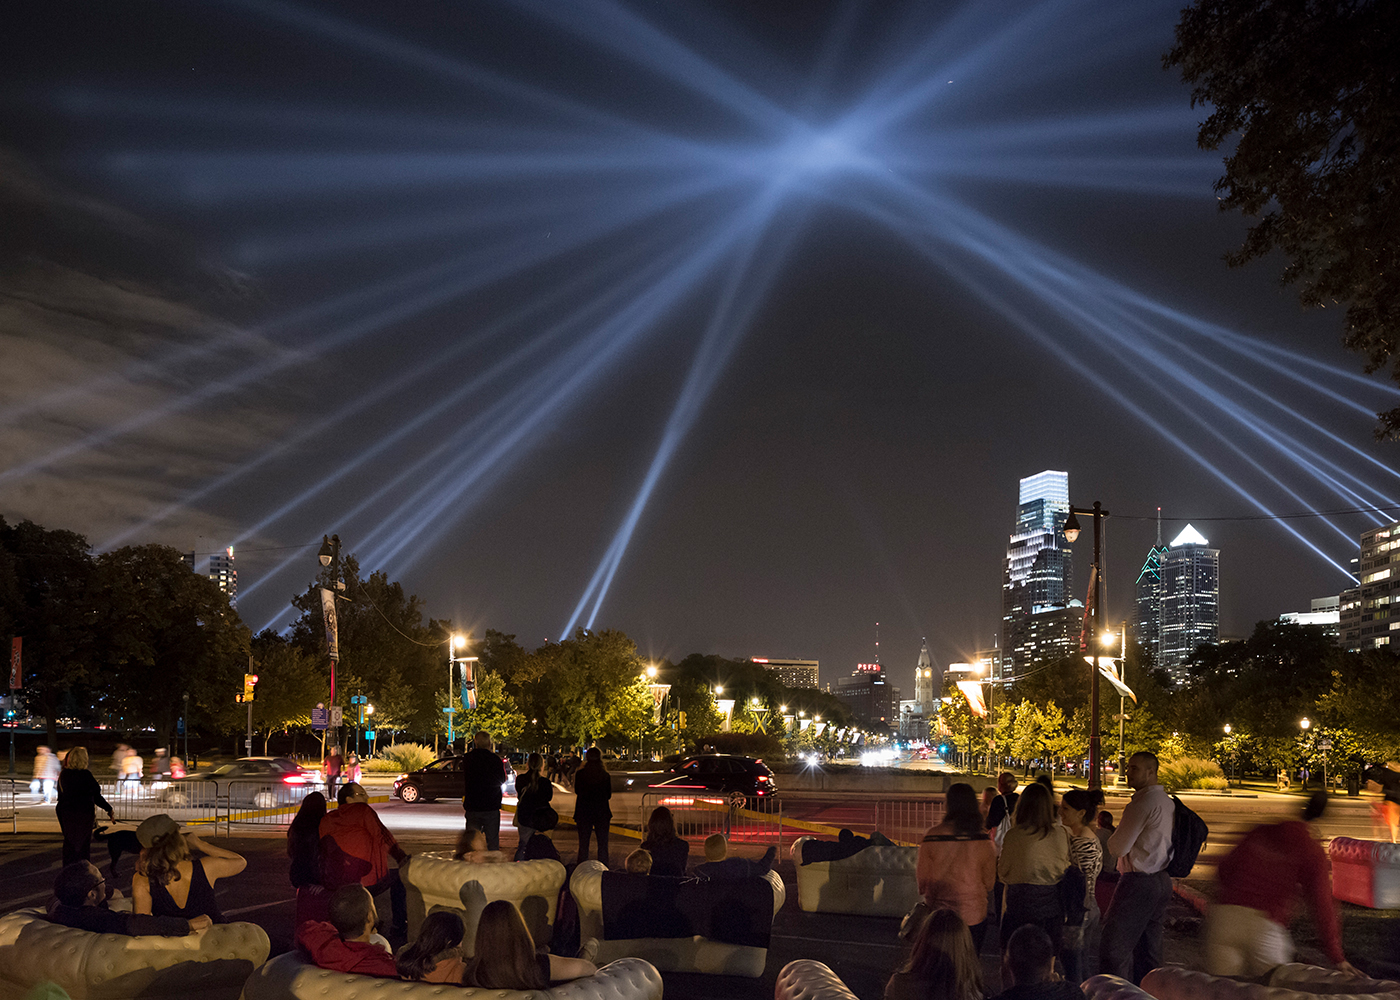 OPEN AIR light installation on the Ben Franklin Parkway at night